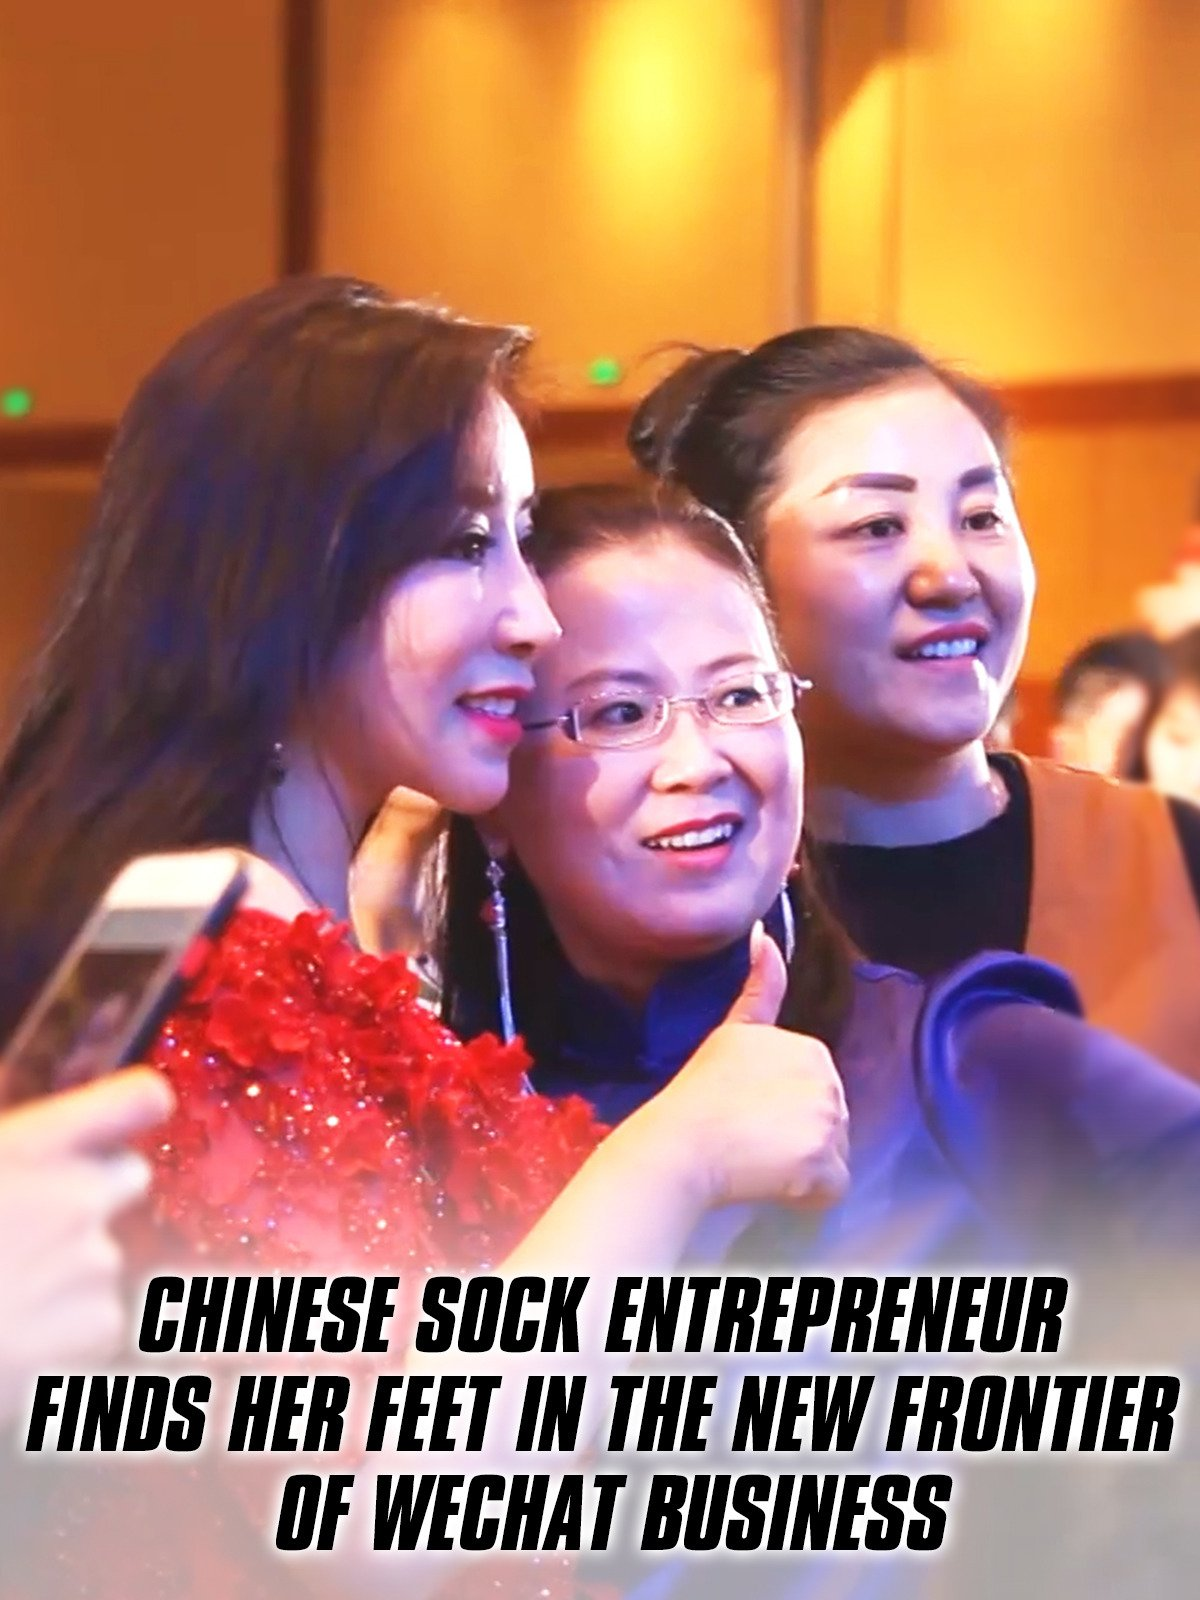 Chinese sock entrepreneur finds her feet in the new frontier of WeChat business